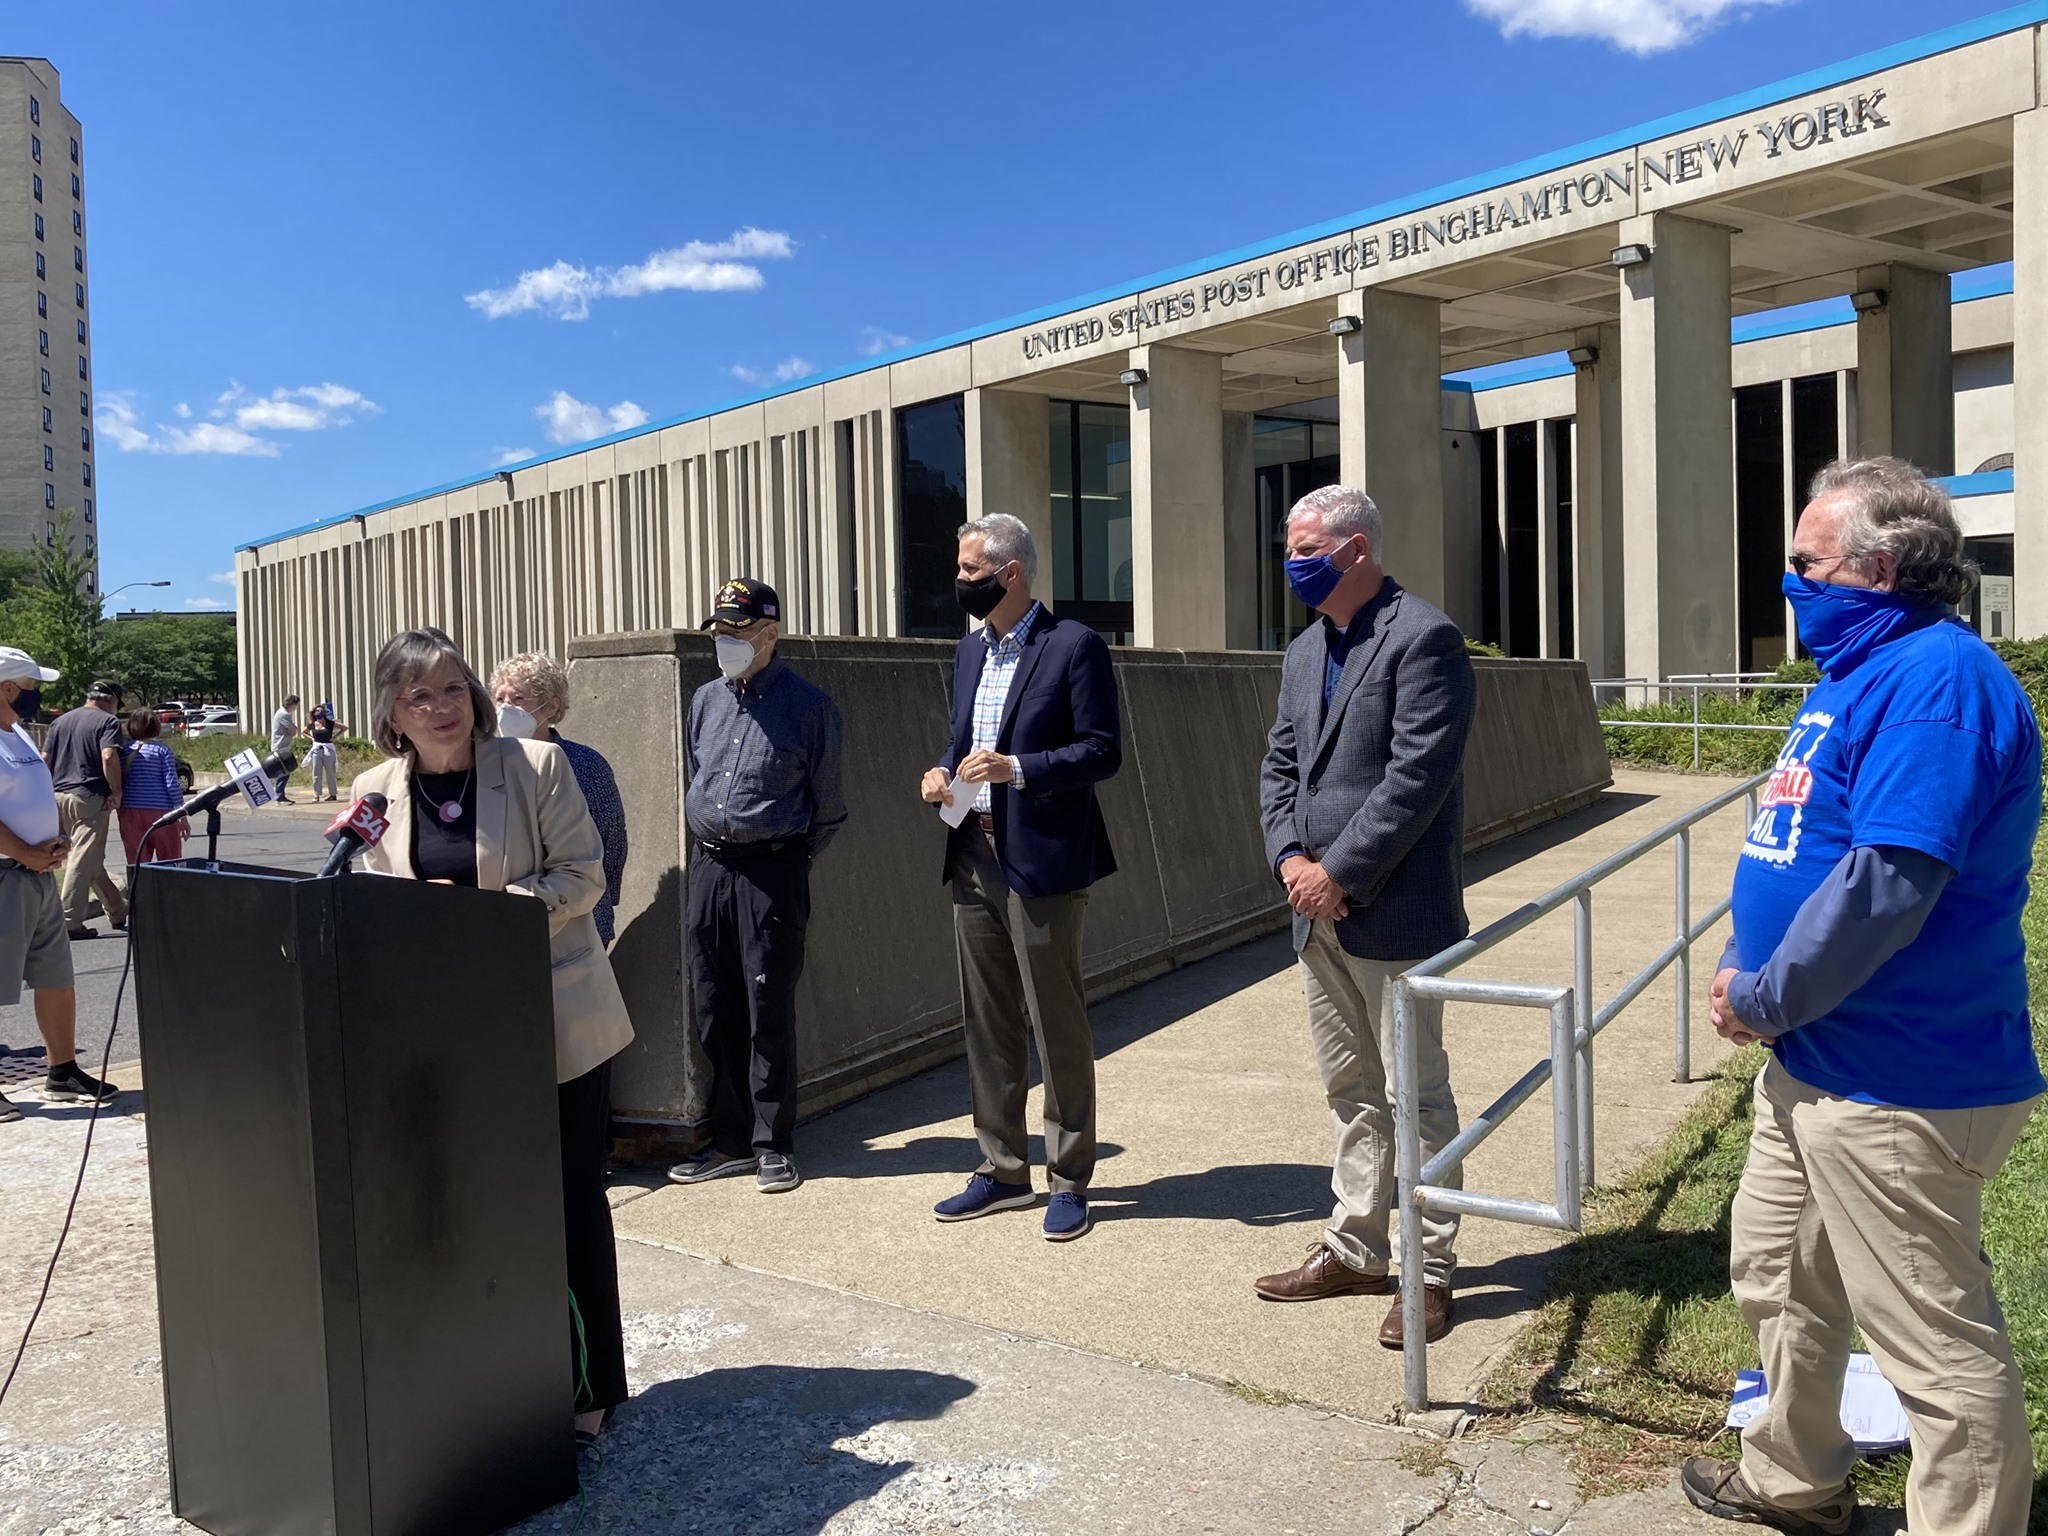 August 20, 2020 – Assemblywoman Lupardo joins Congressman Anthony Brindisi to speak out in support of the USPS at the Binghamton Post Office.